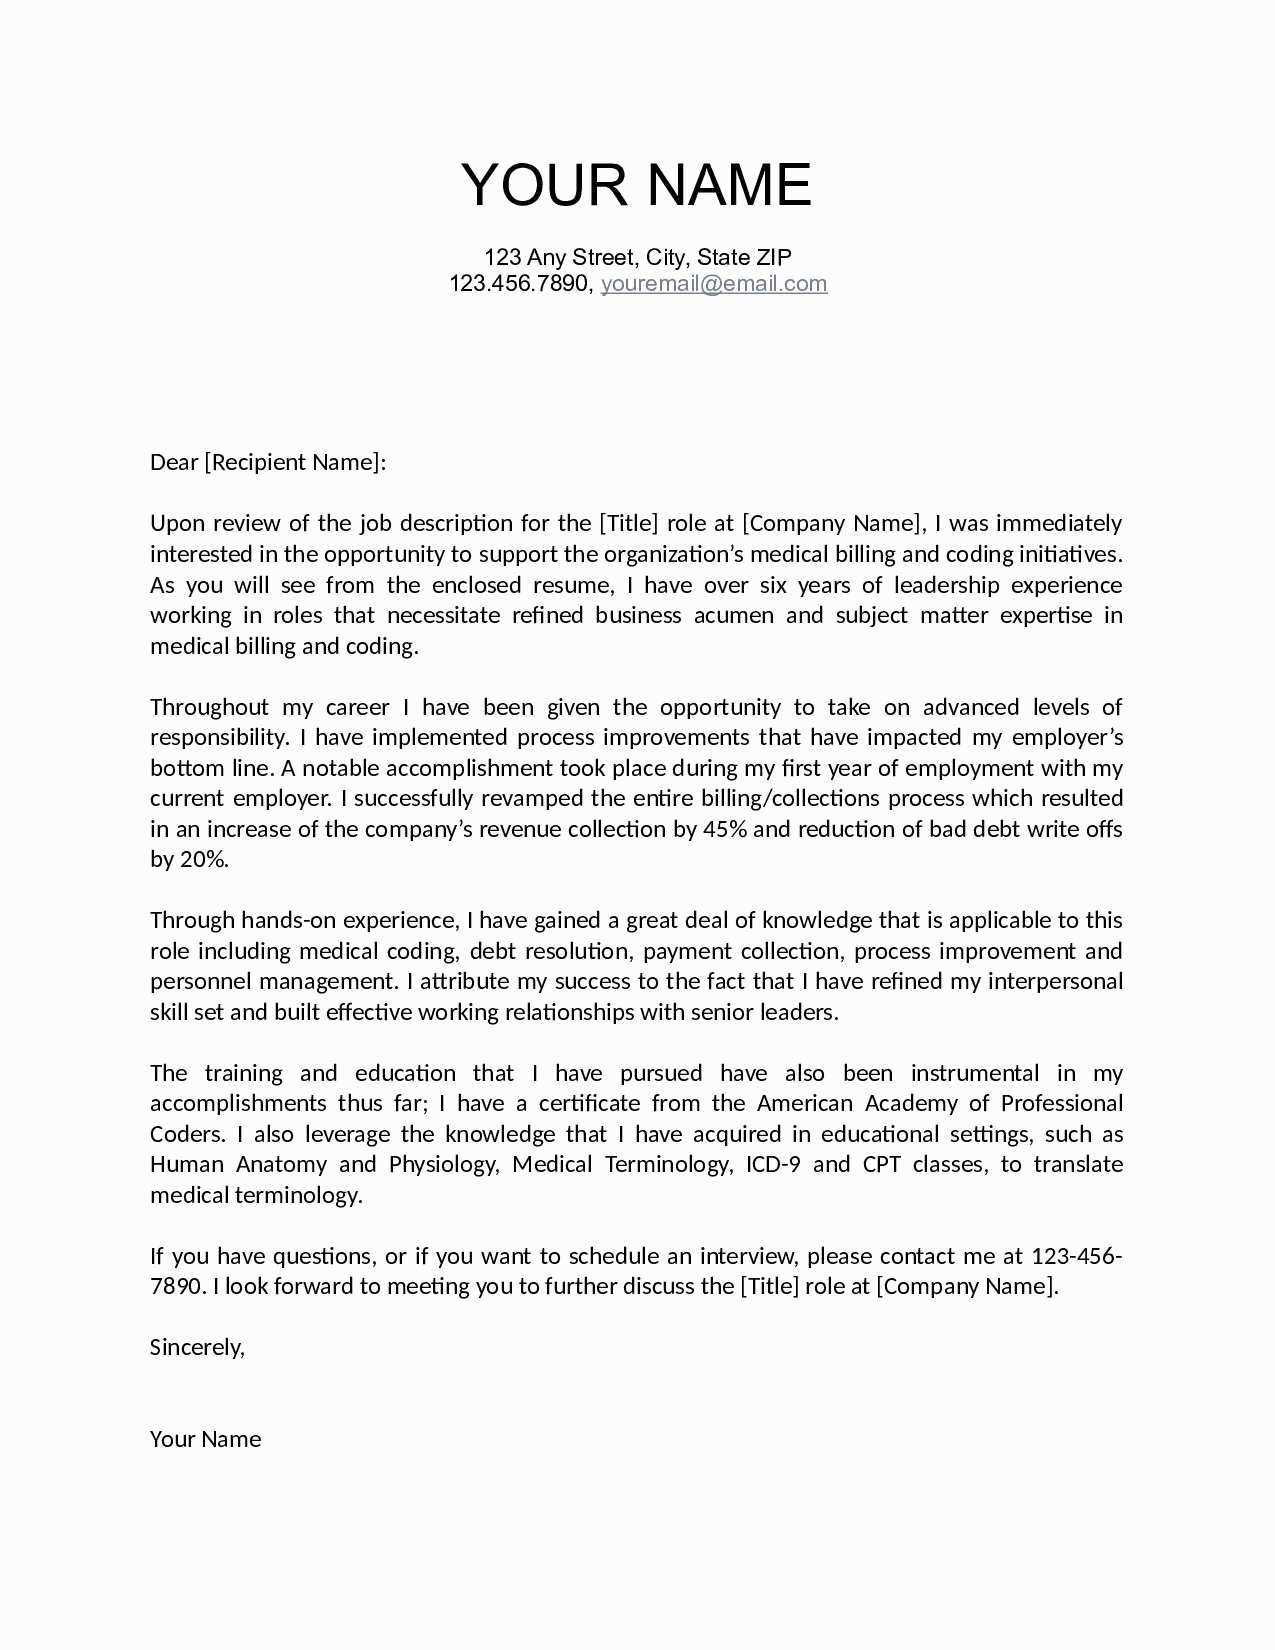 Marketing Cover Letter Template - How to Write A Cover Letter for A Marketing Job Valid Job Fer Letter